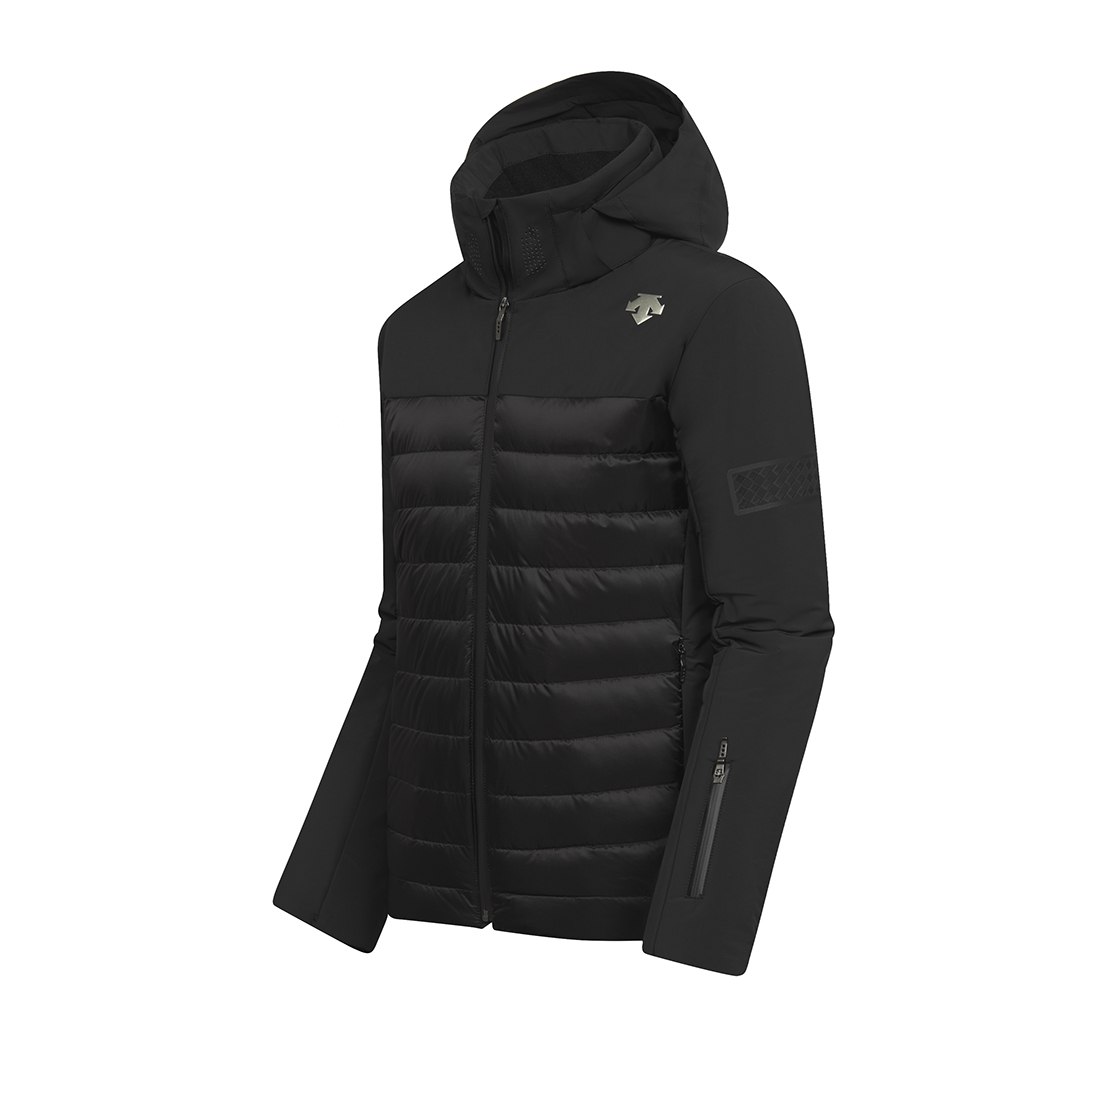 HYBRID INSULATED JACKET